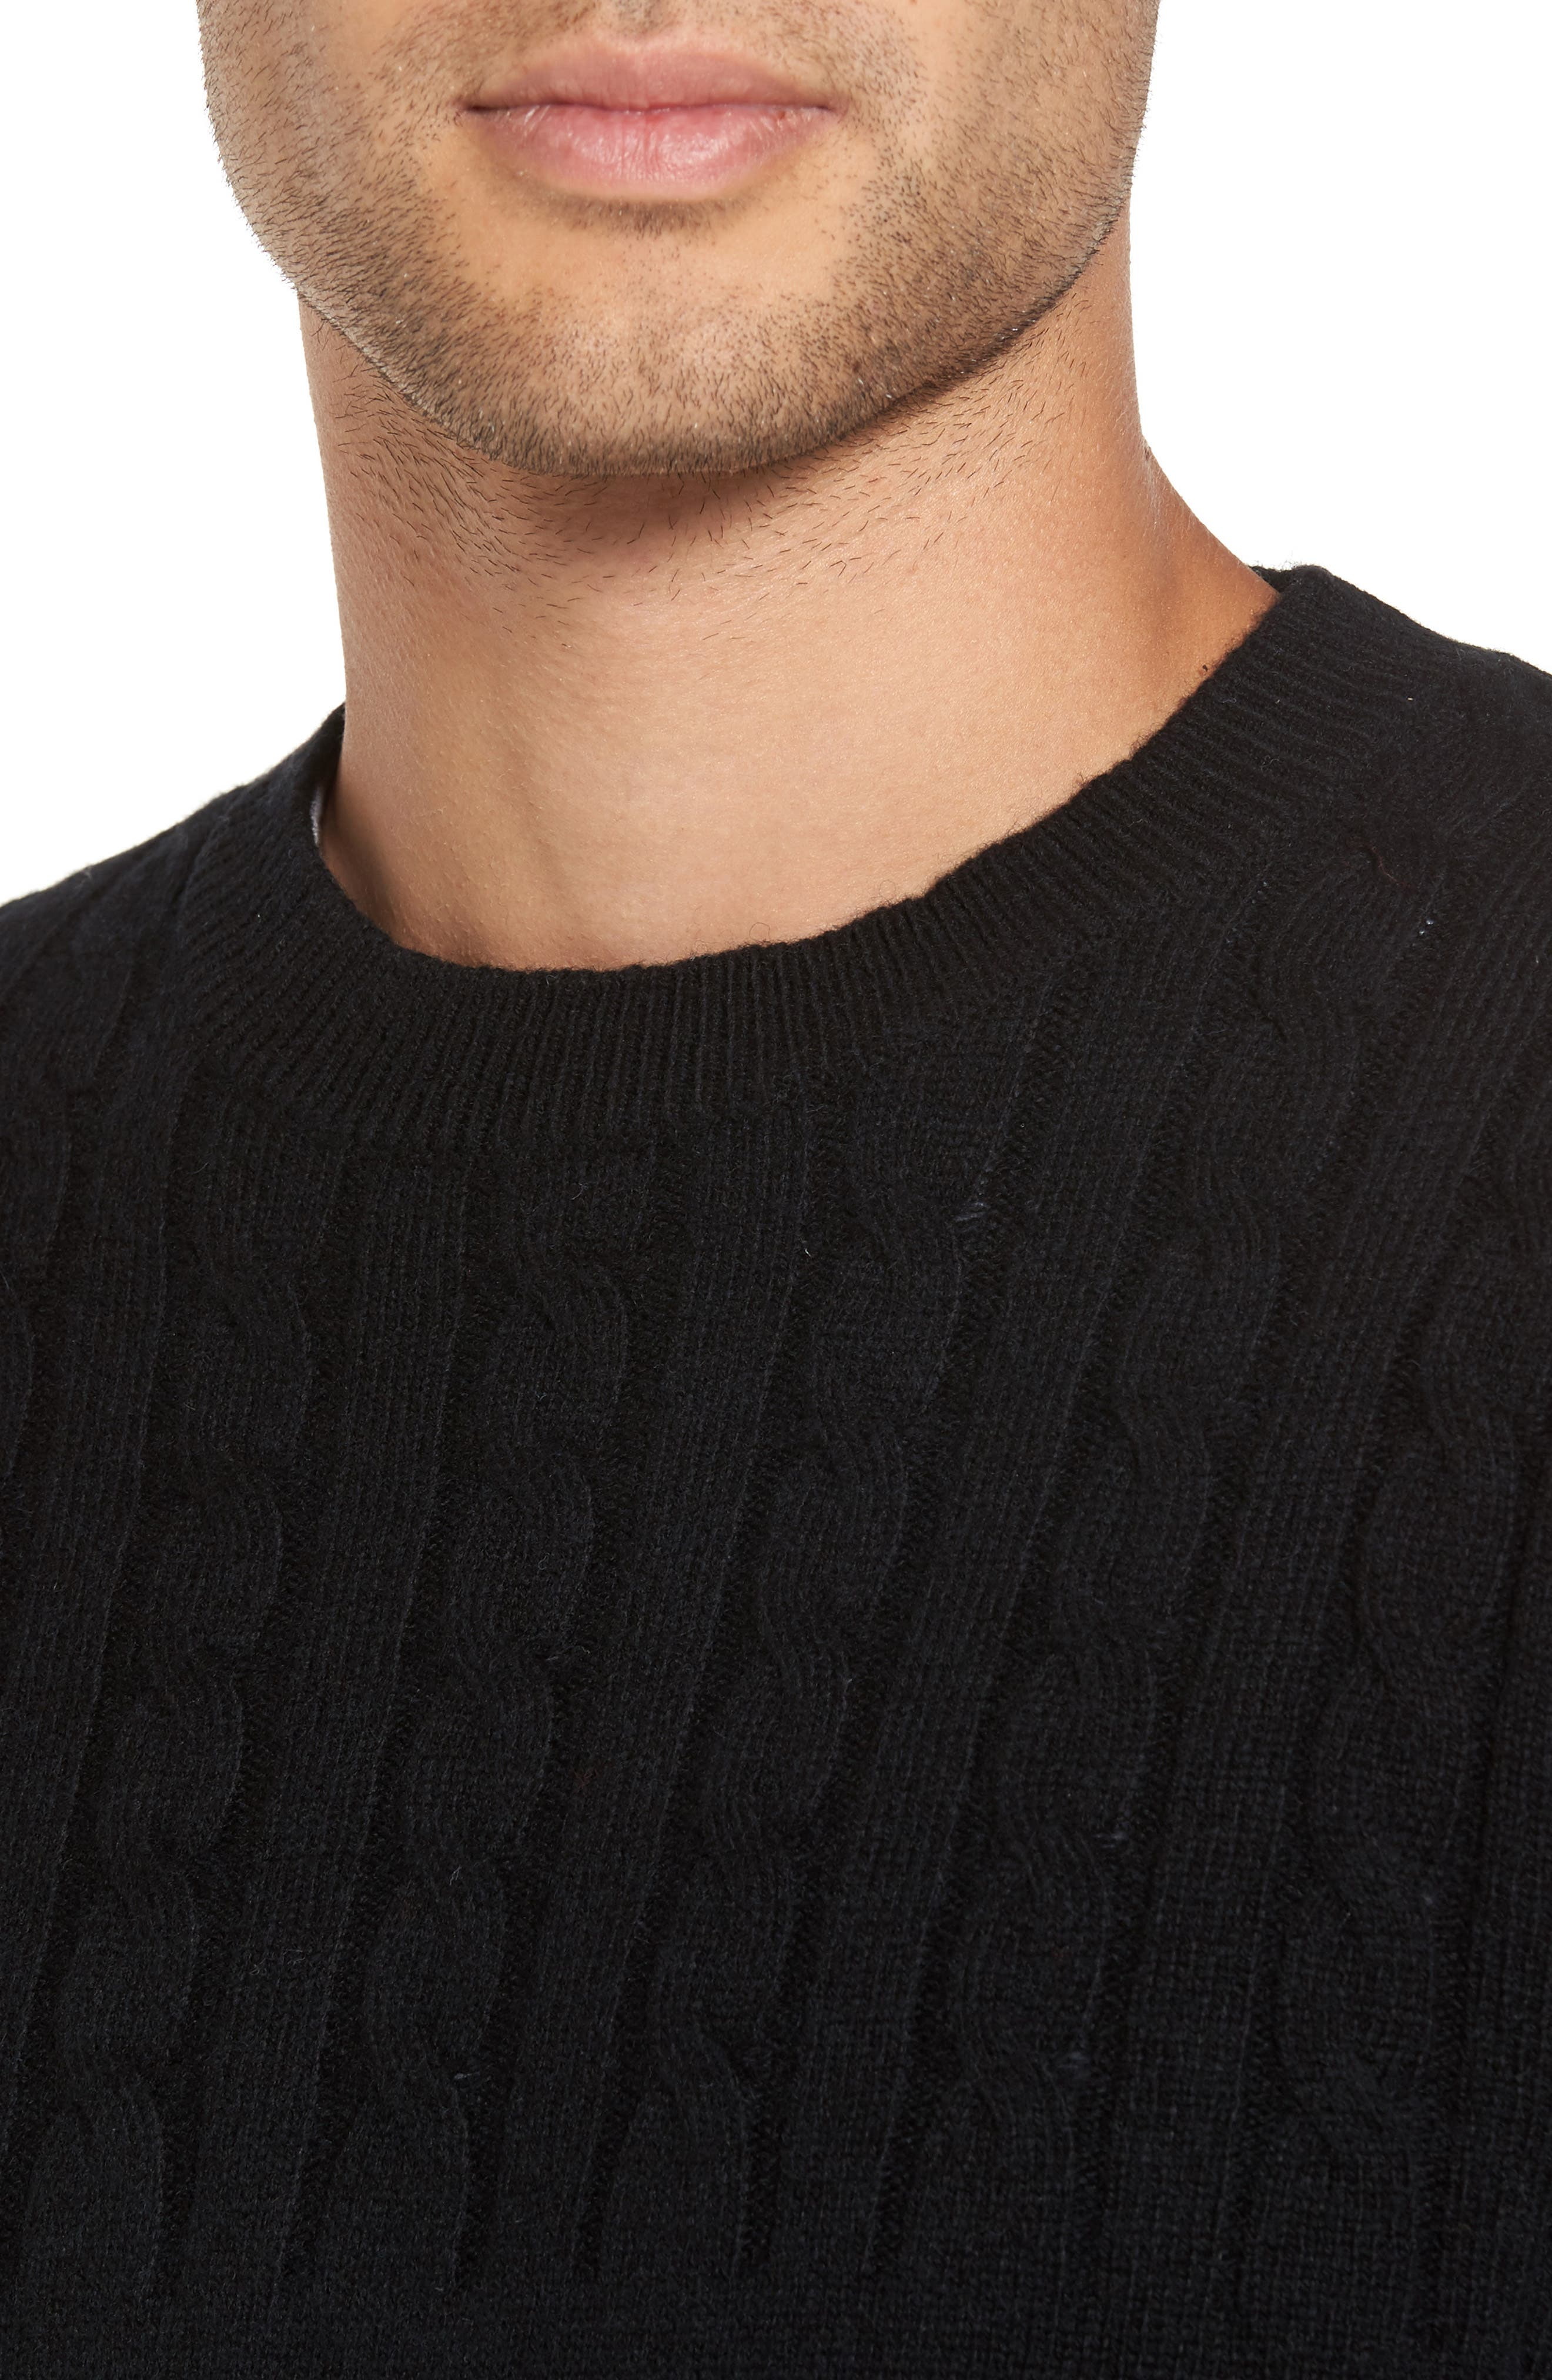 Wool Cable Knit Sweater,                             Alternate thumbnail 4, color,                             001